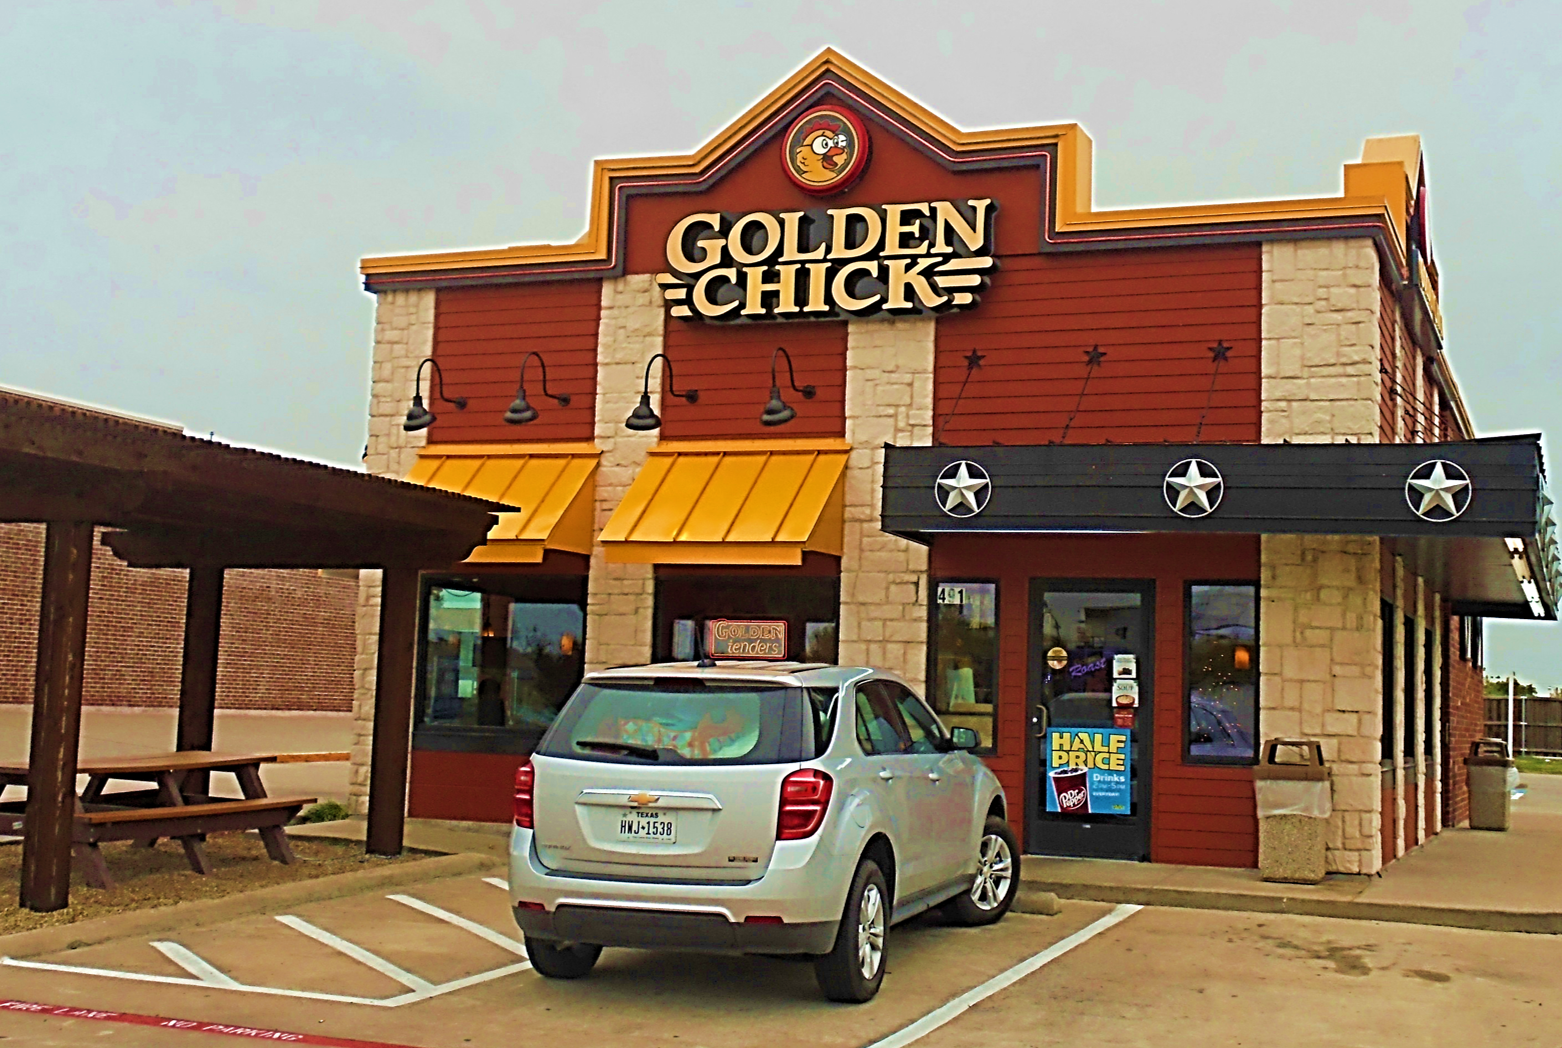 Golden Chick storefront.  Your local Golden Chick fast food restaurant in Princeton, Texas